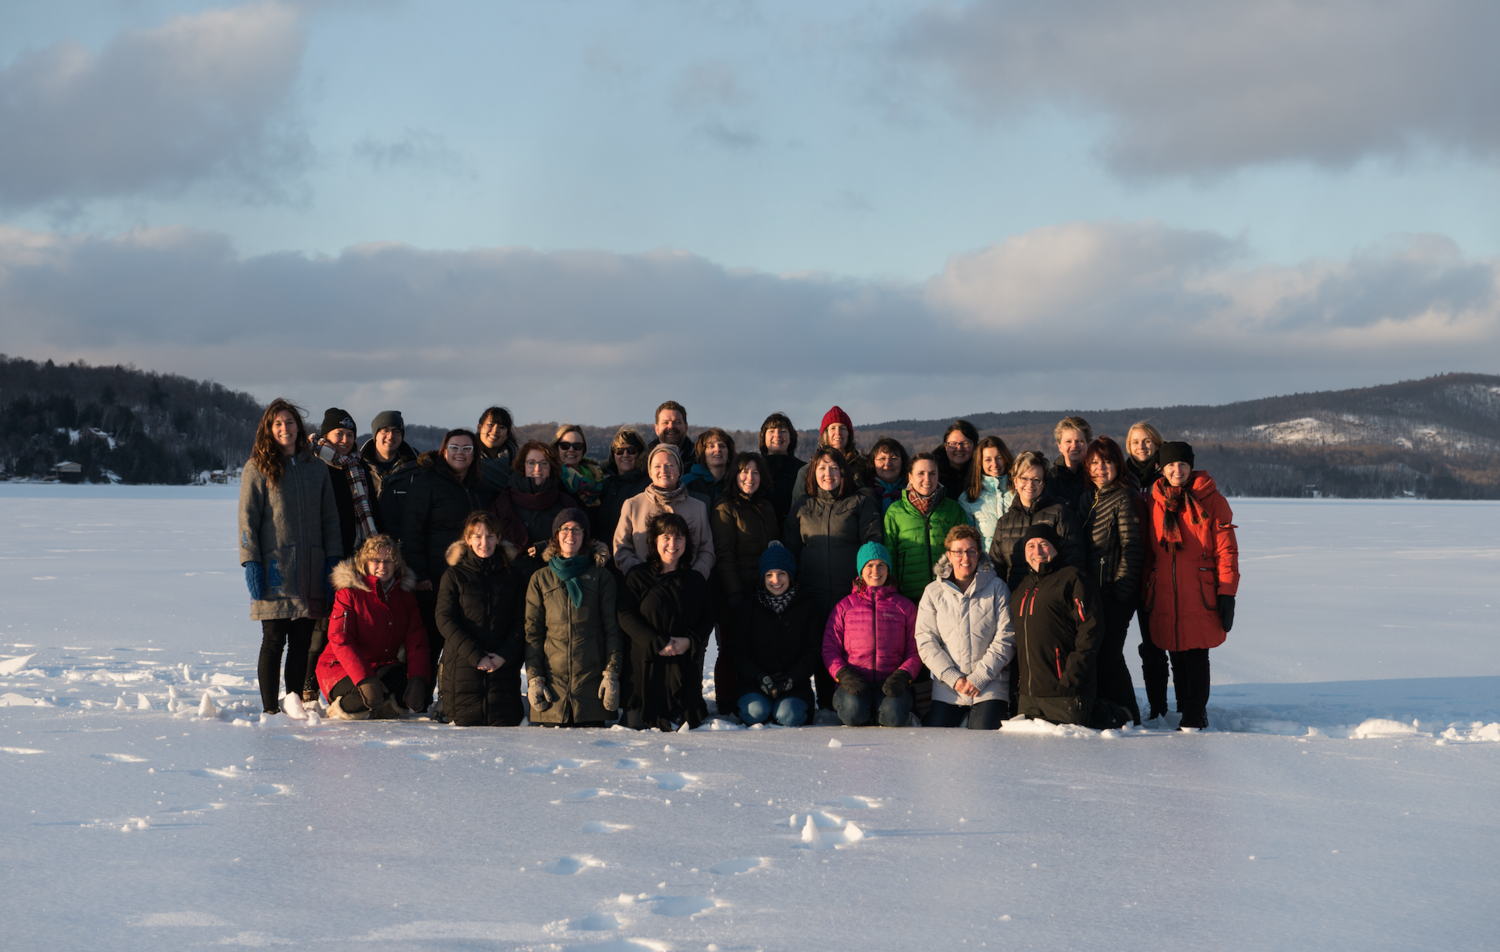 The Nourish innovators gather together for the first time at the first cohort retreat in frigid but beautiful CAMAC Quebec in February 2017.